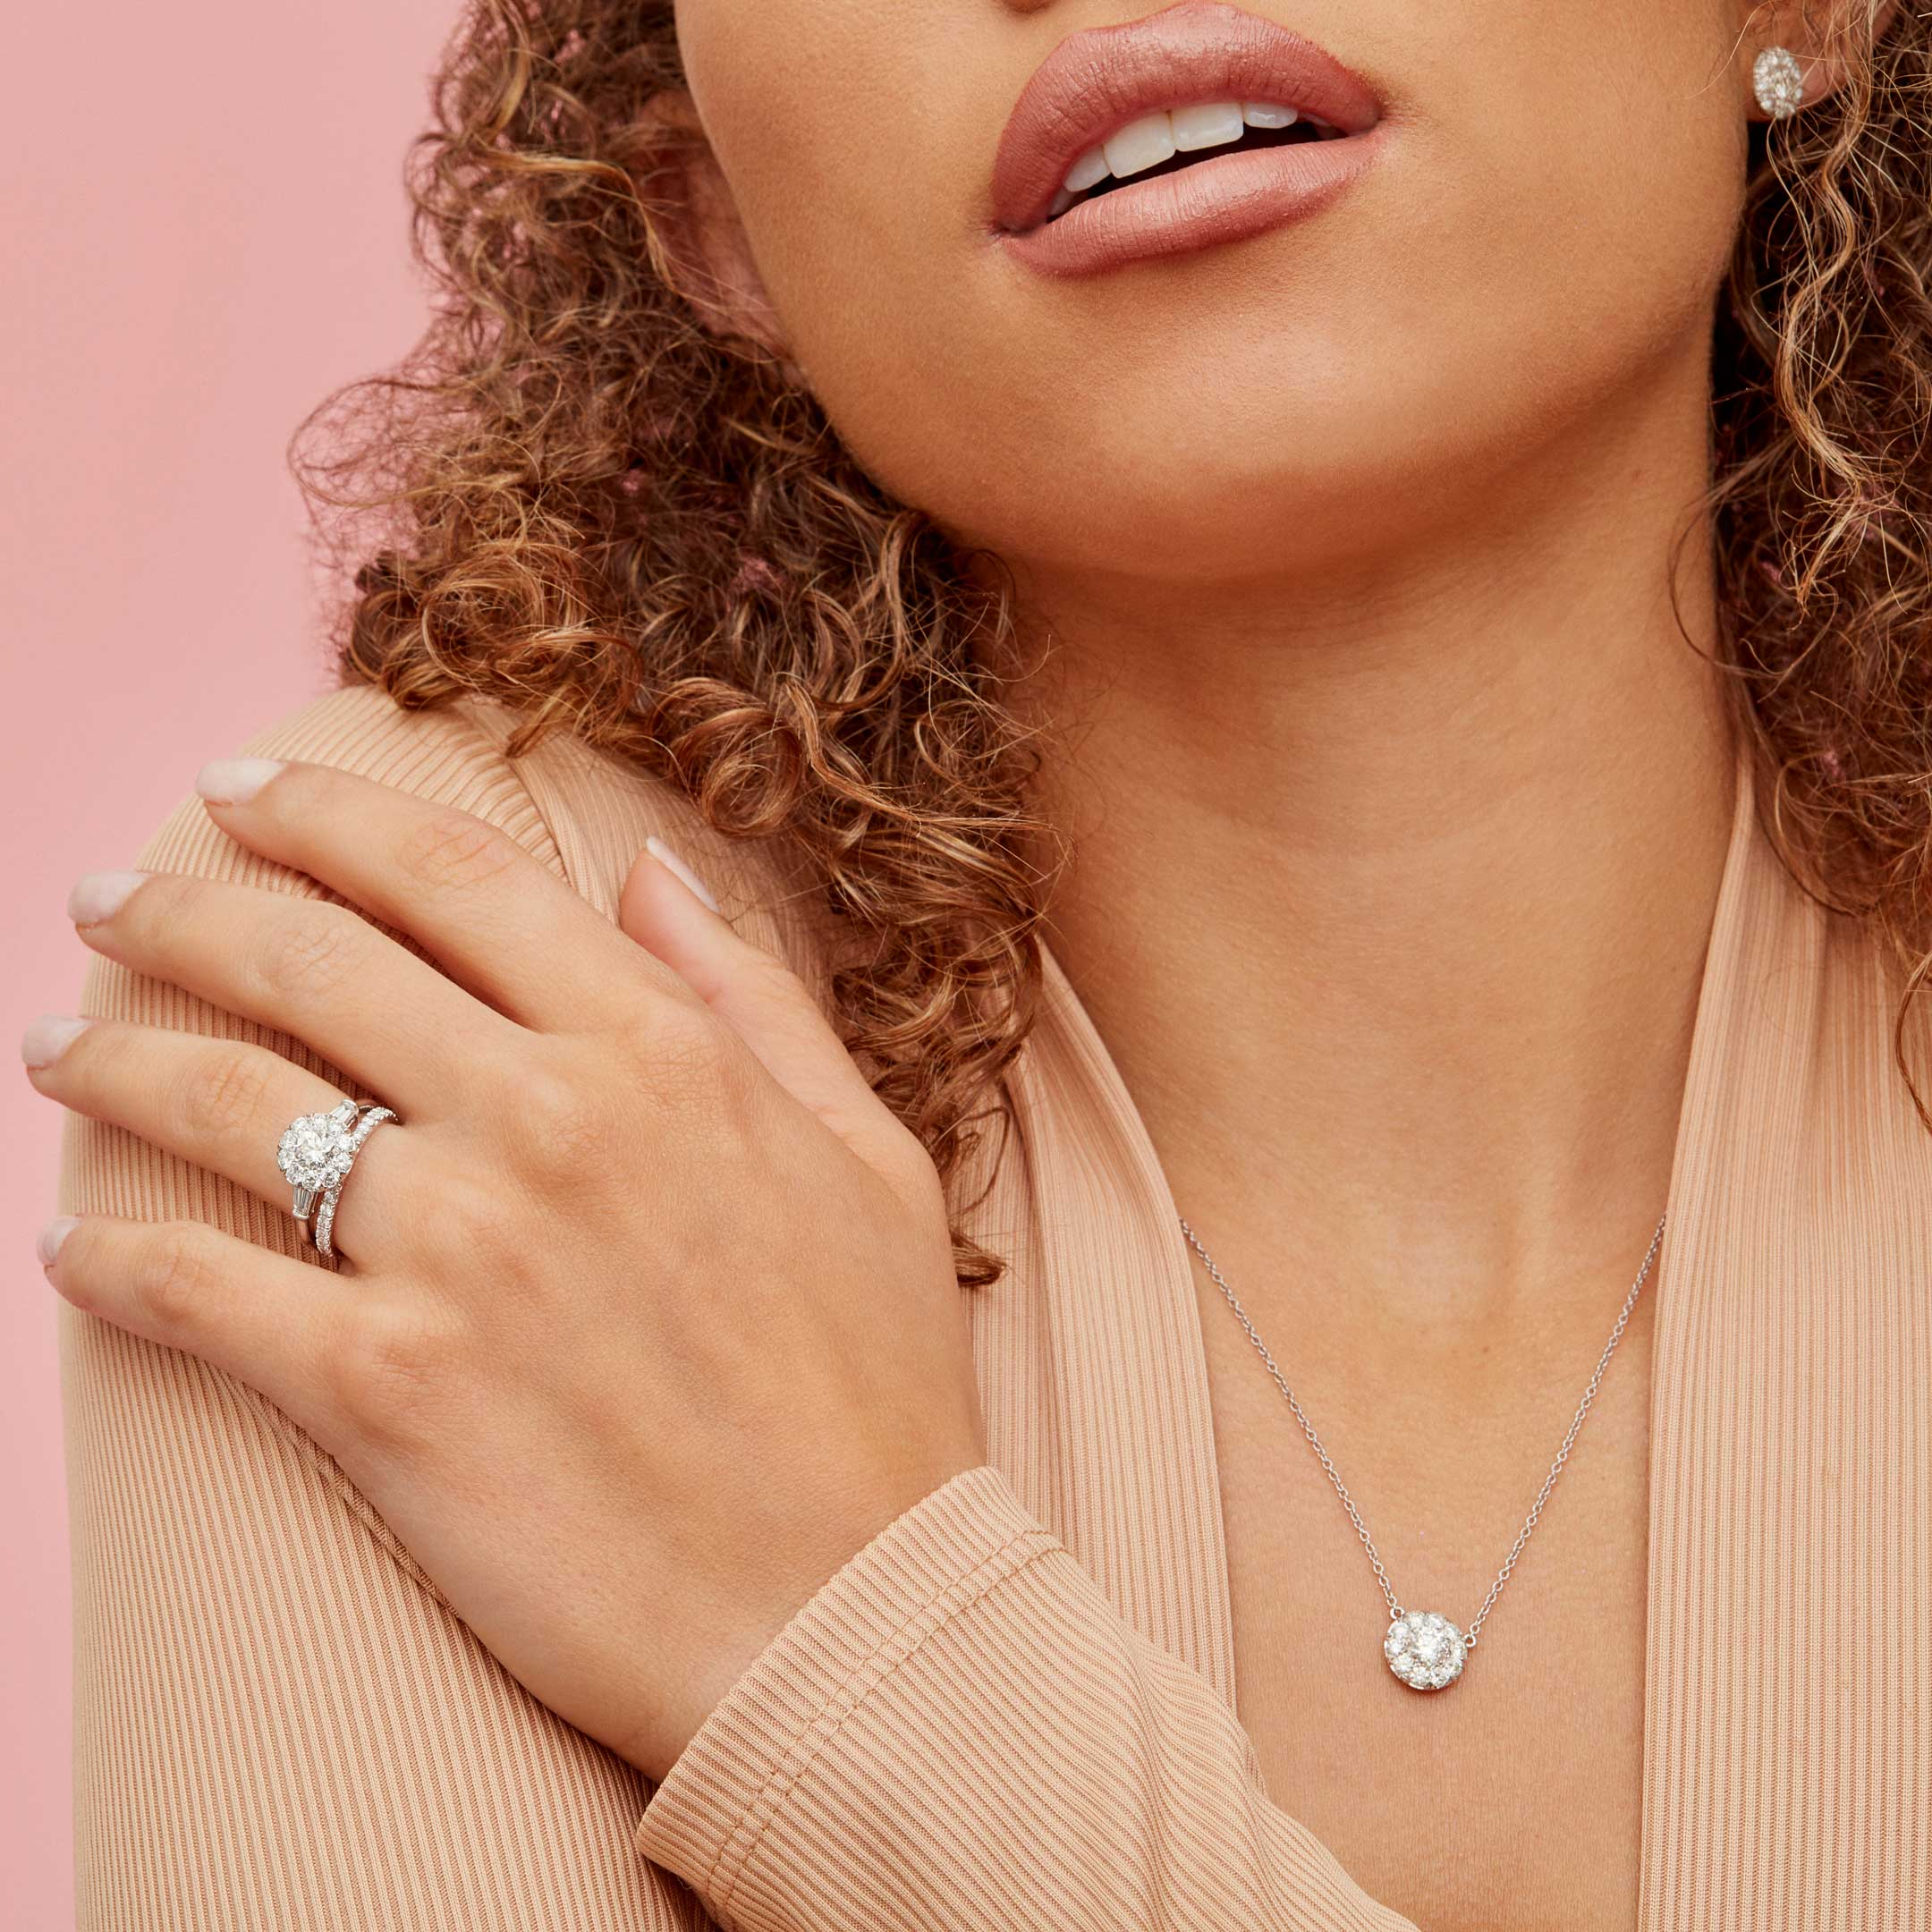 Lucile Round Brilliant Seamless Solitaire™ Diamond Pendant in Platinum Hand against Model Lifestyle by Oui by Jean Dousset